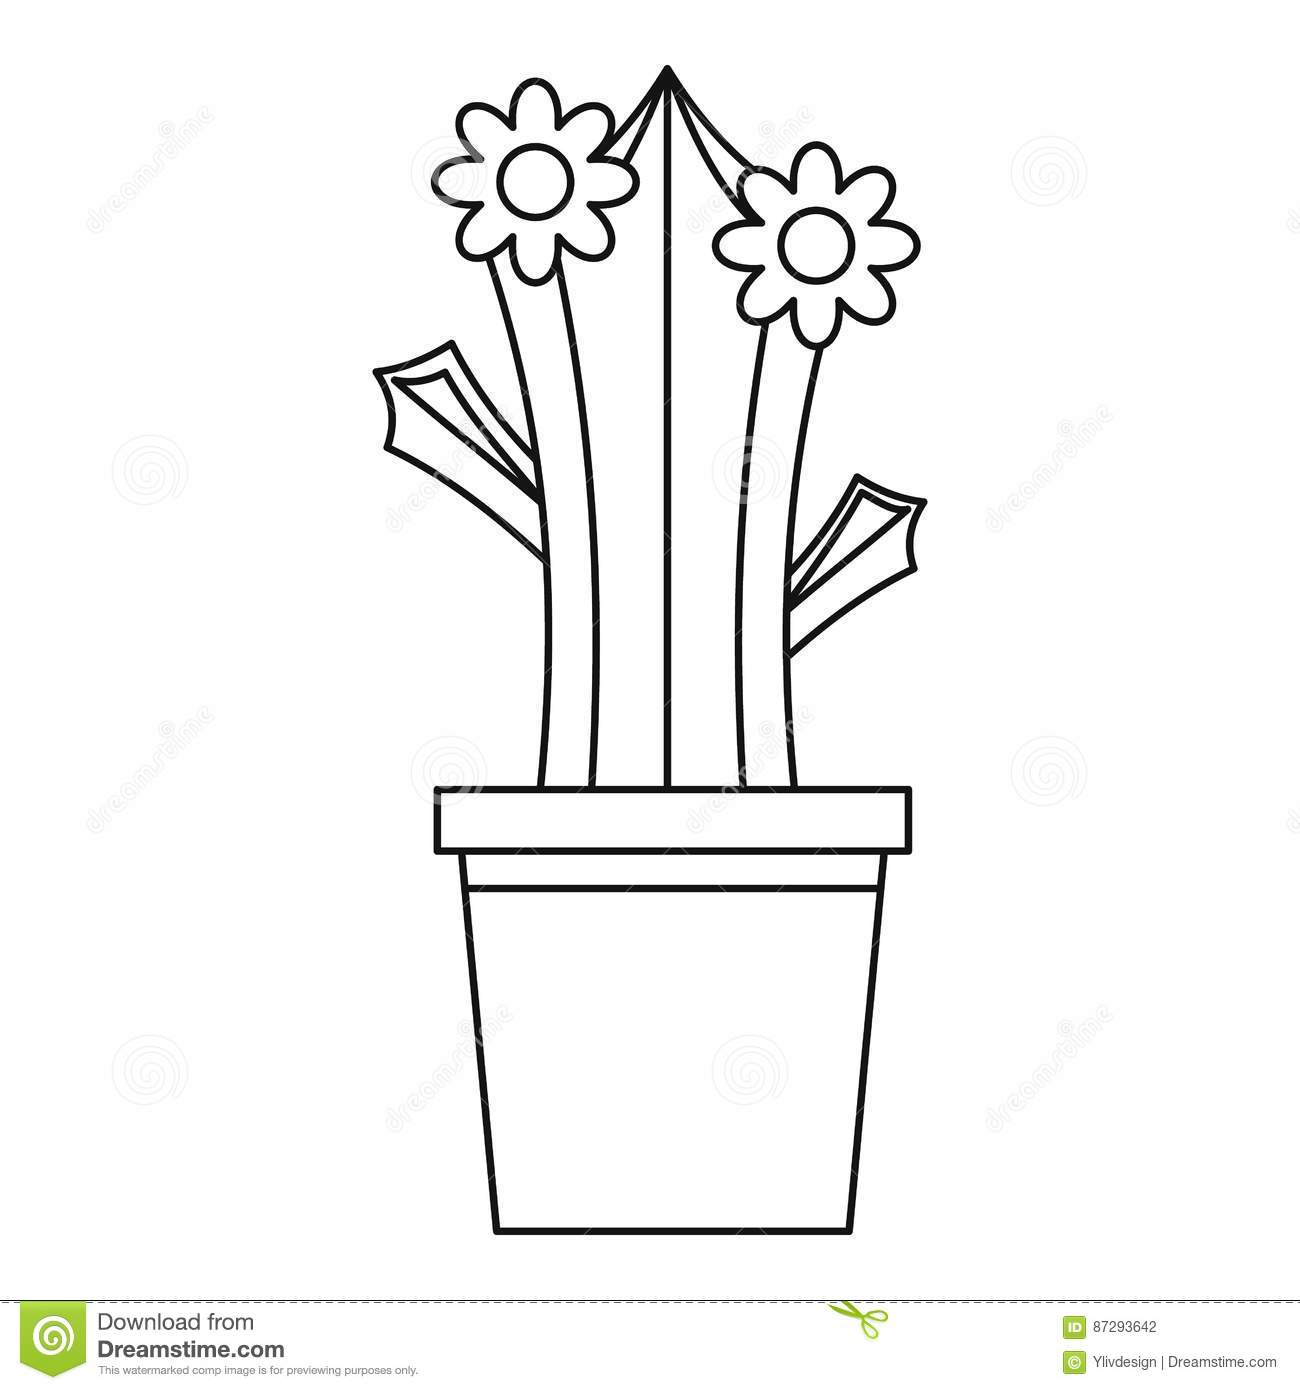 Blooming Cactus In Pot Icon, Outline Style Stock Vector ...  Cactus Flower Outline